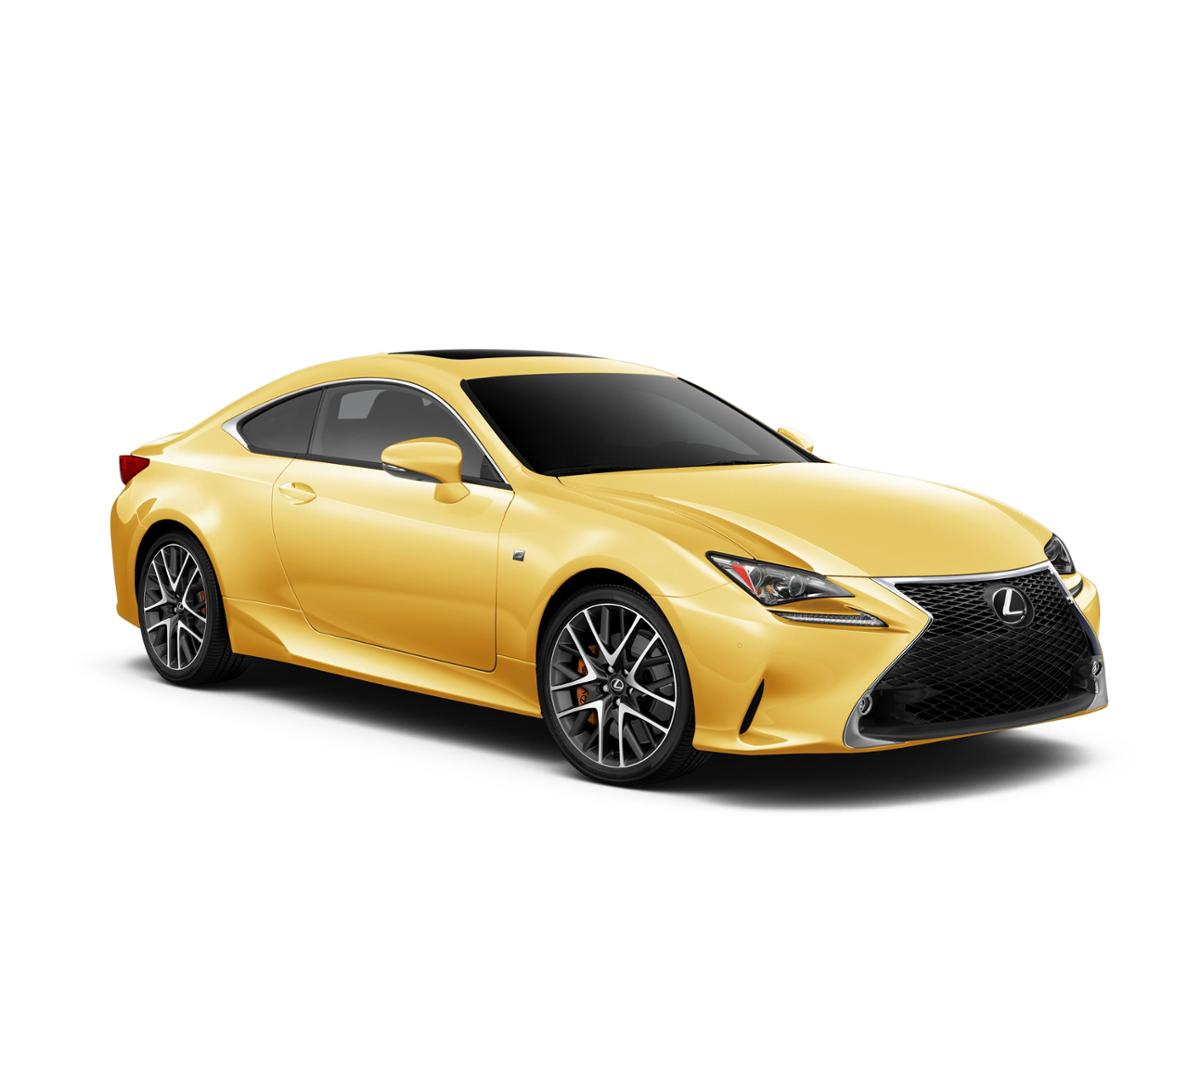 new flare yellow 2018 lexus rc 300 f sport for sale fremont ca magnussen lexus of fremont. Black Bedroom Furniture Sets. Home Design Ideas